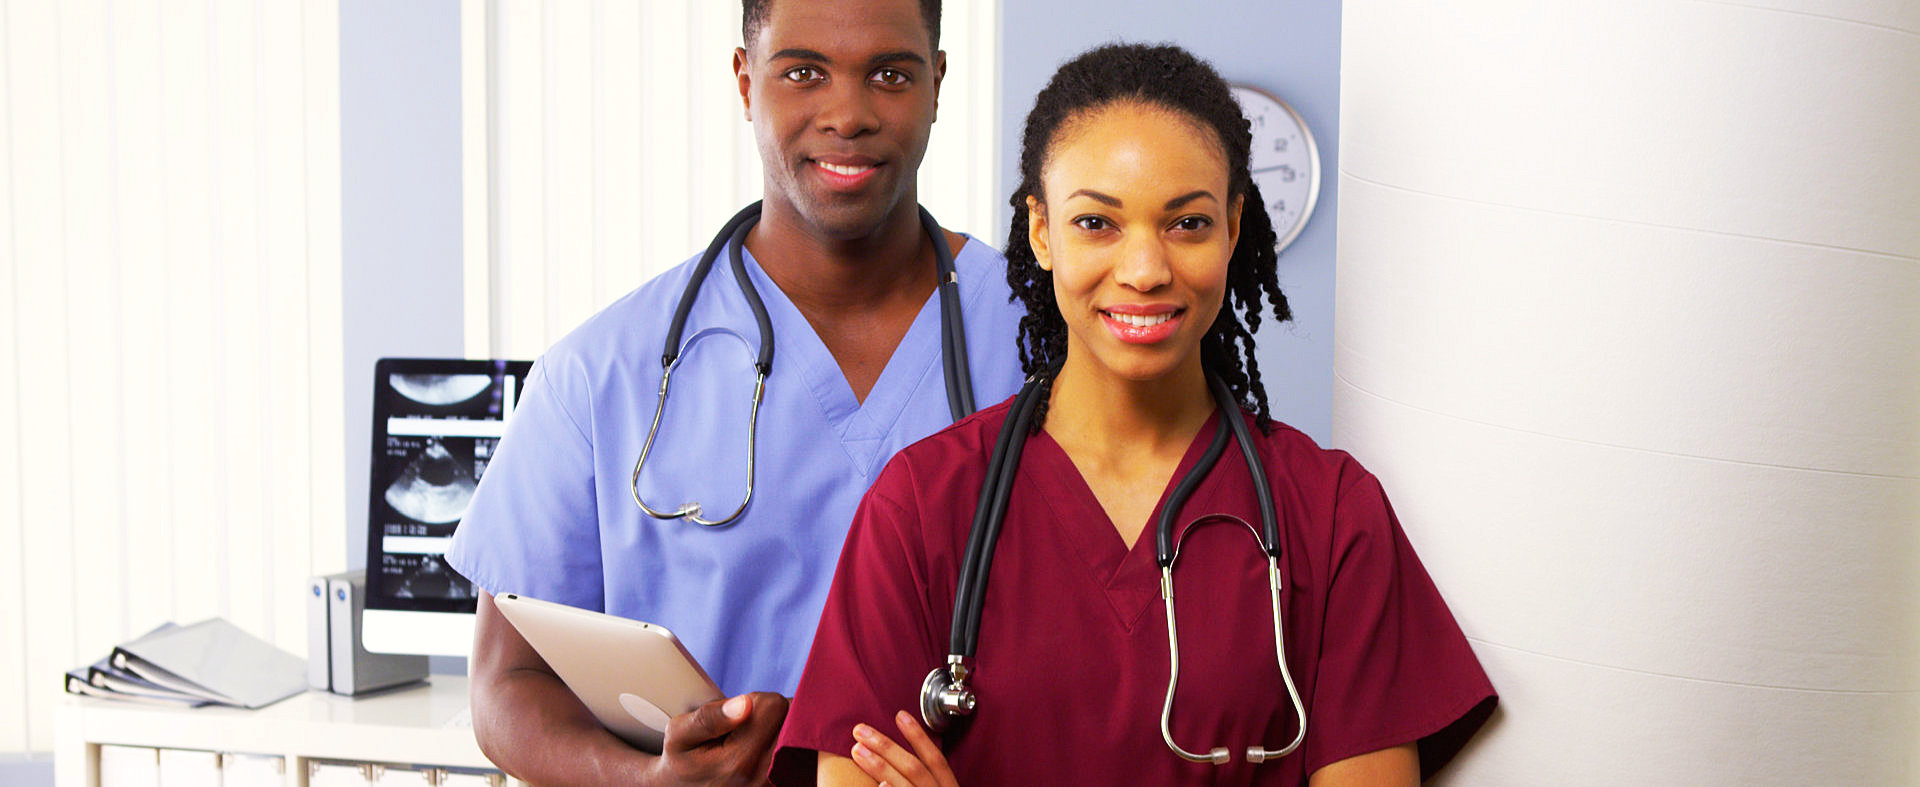 two medical staffs smiling